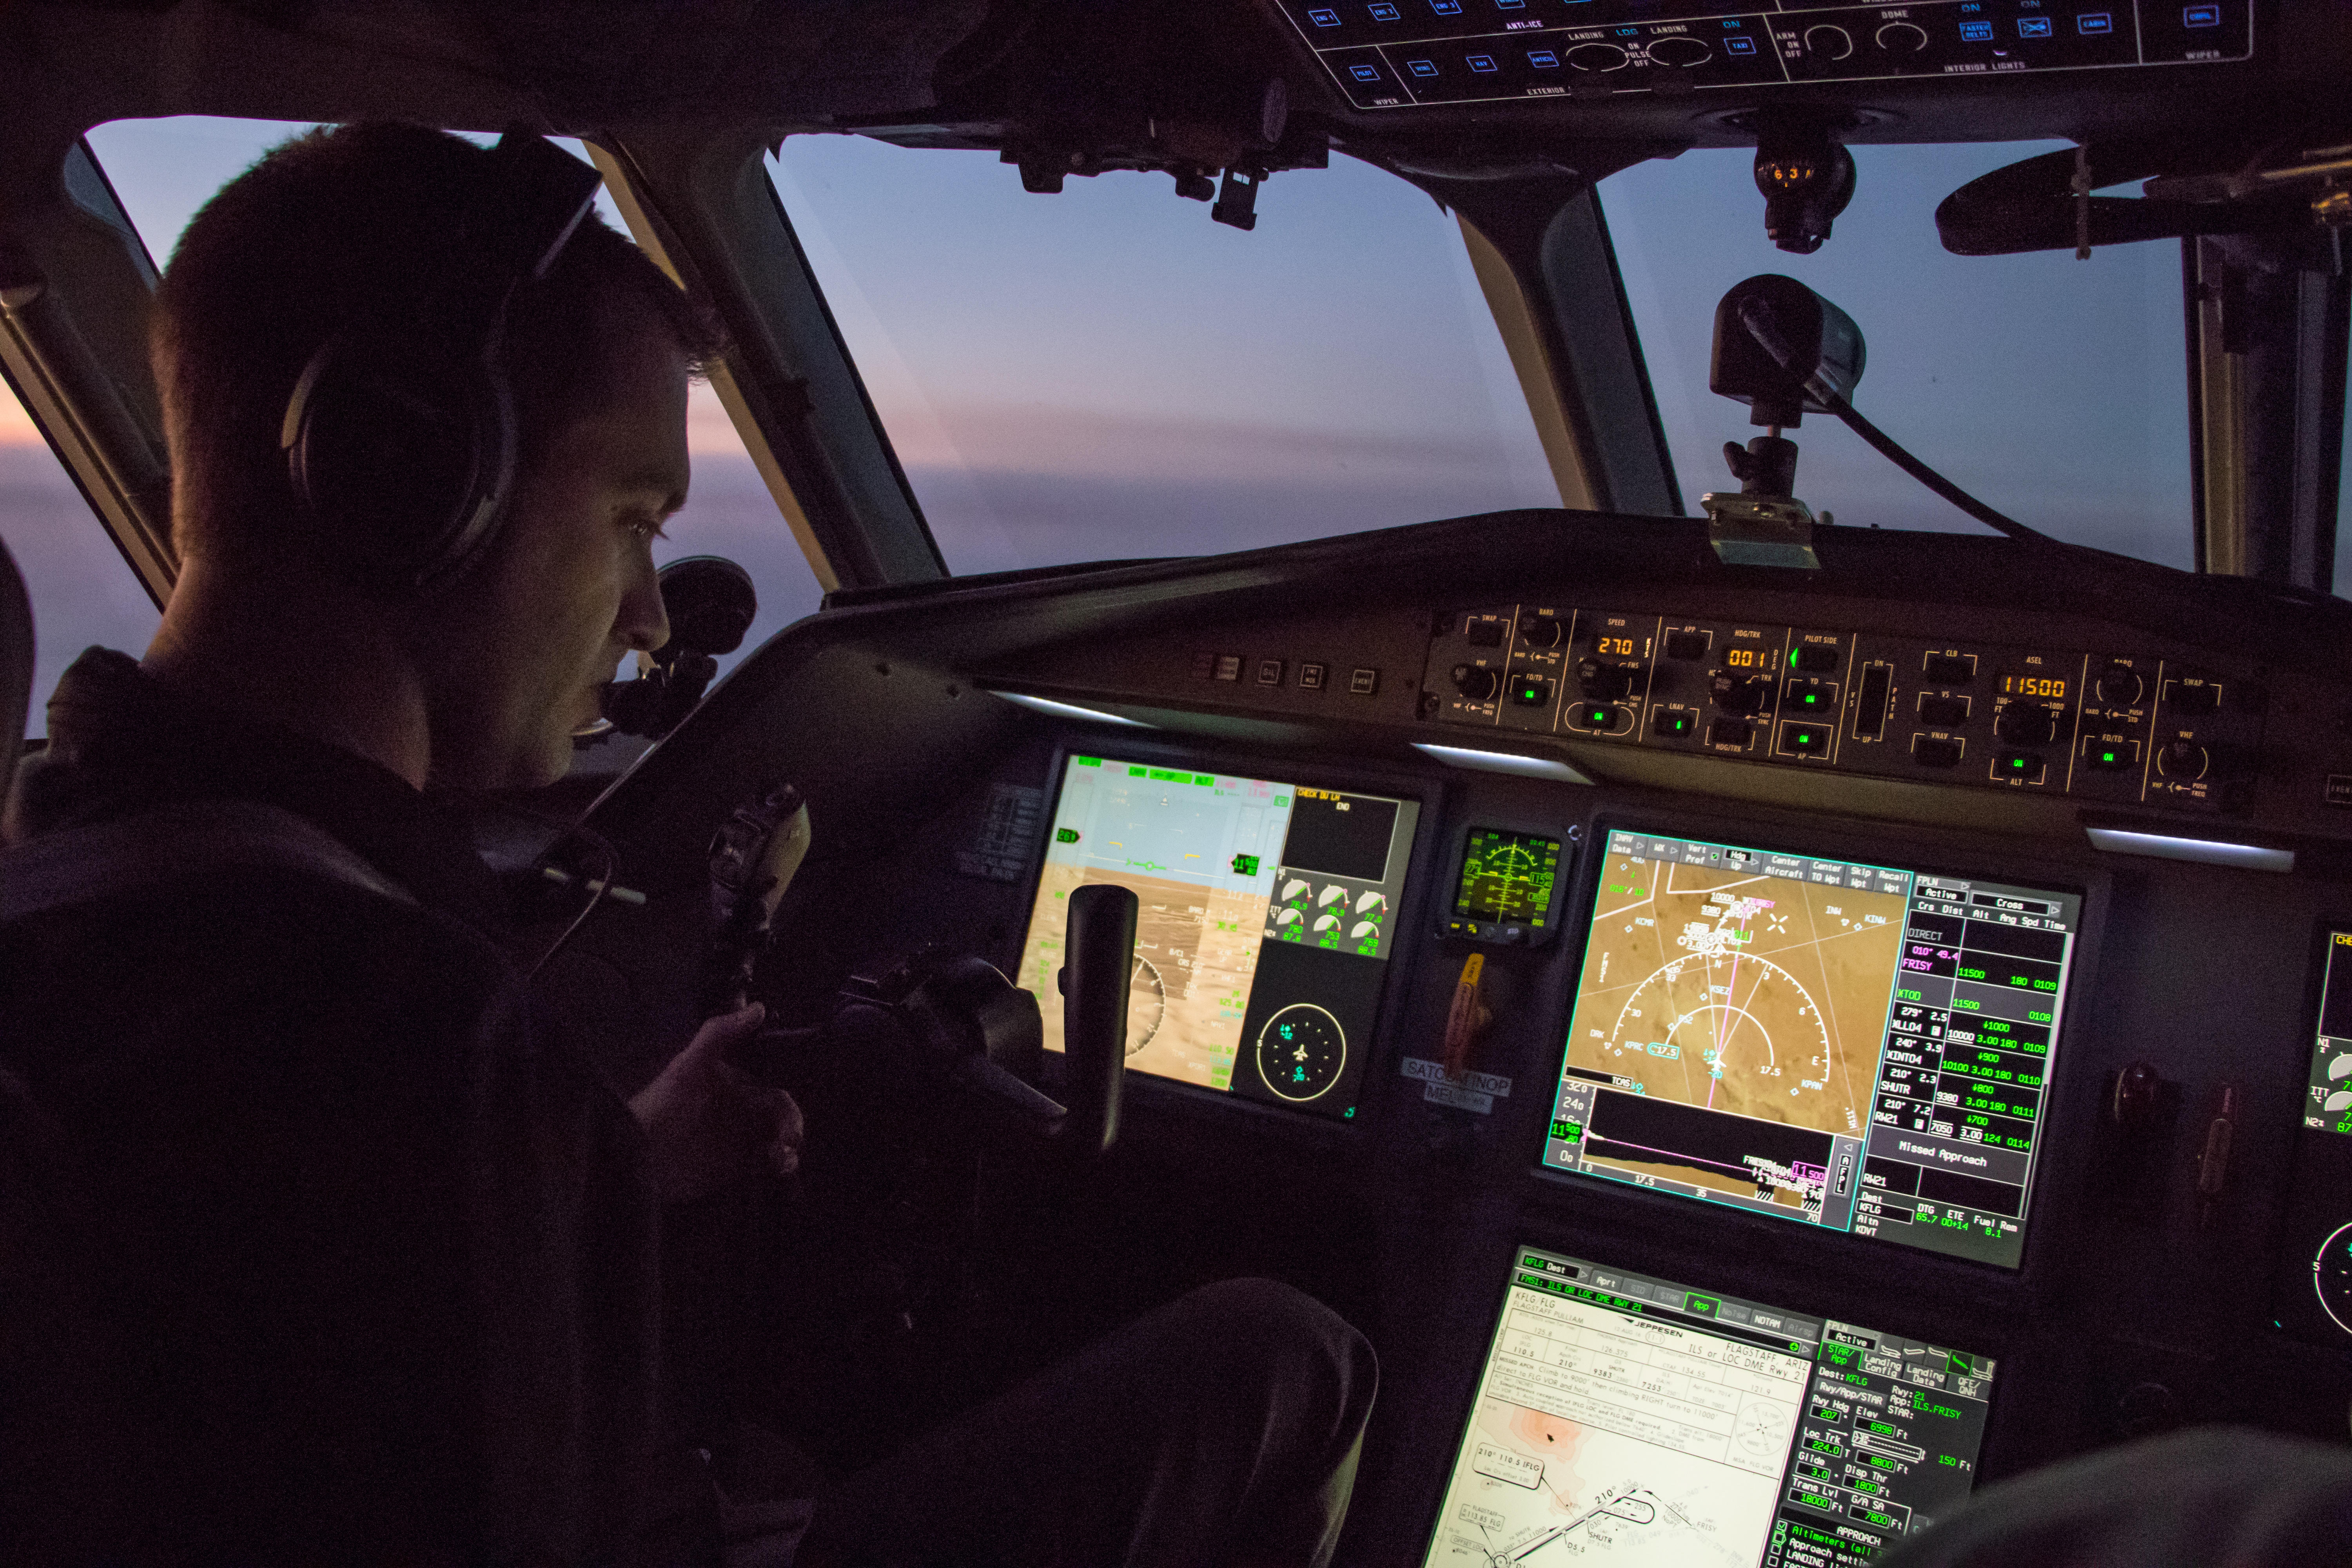 Helping pilots see what they might miss